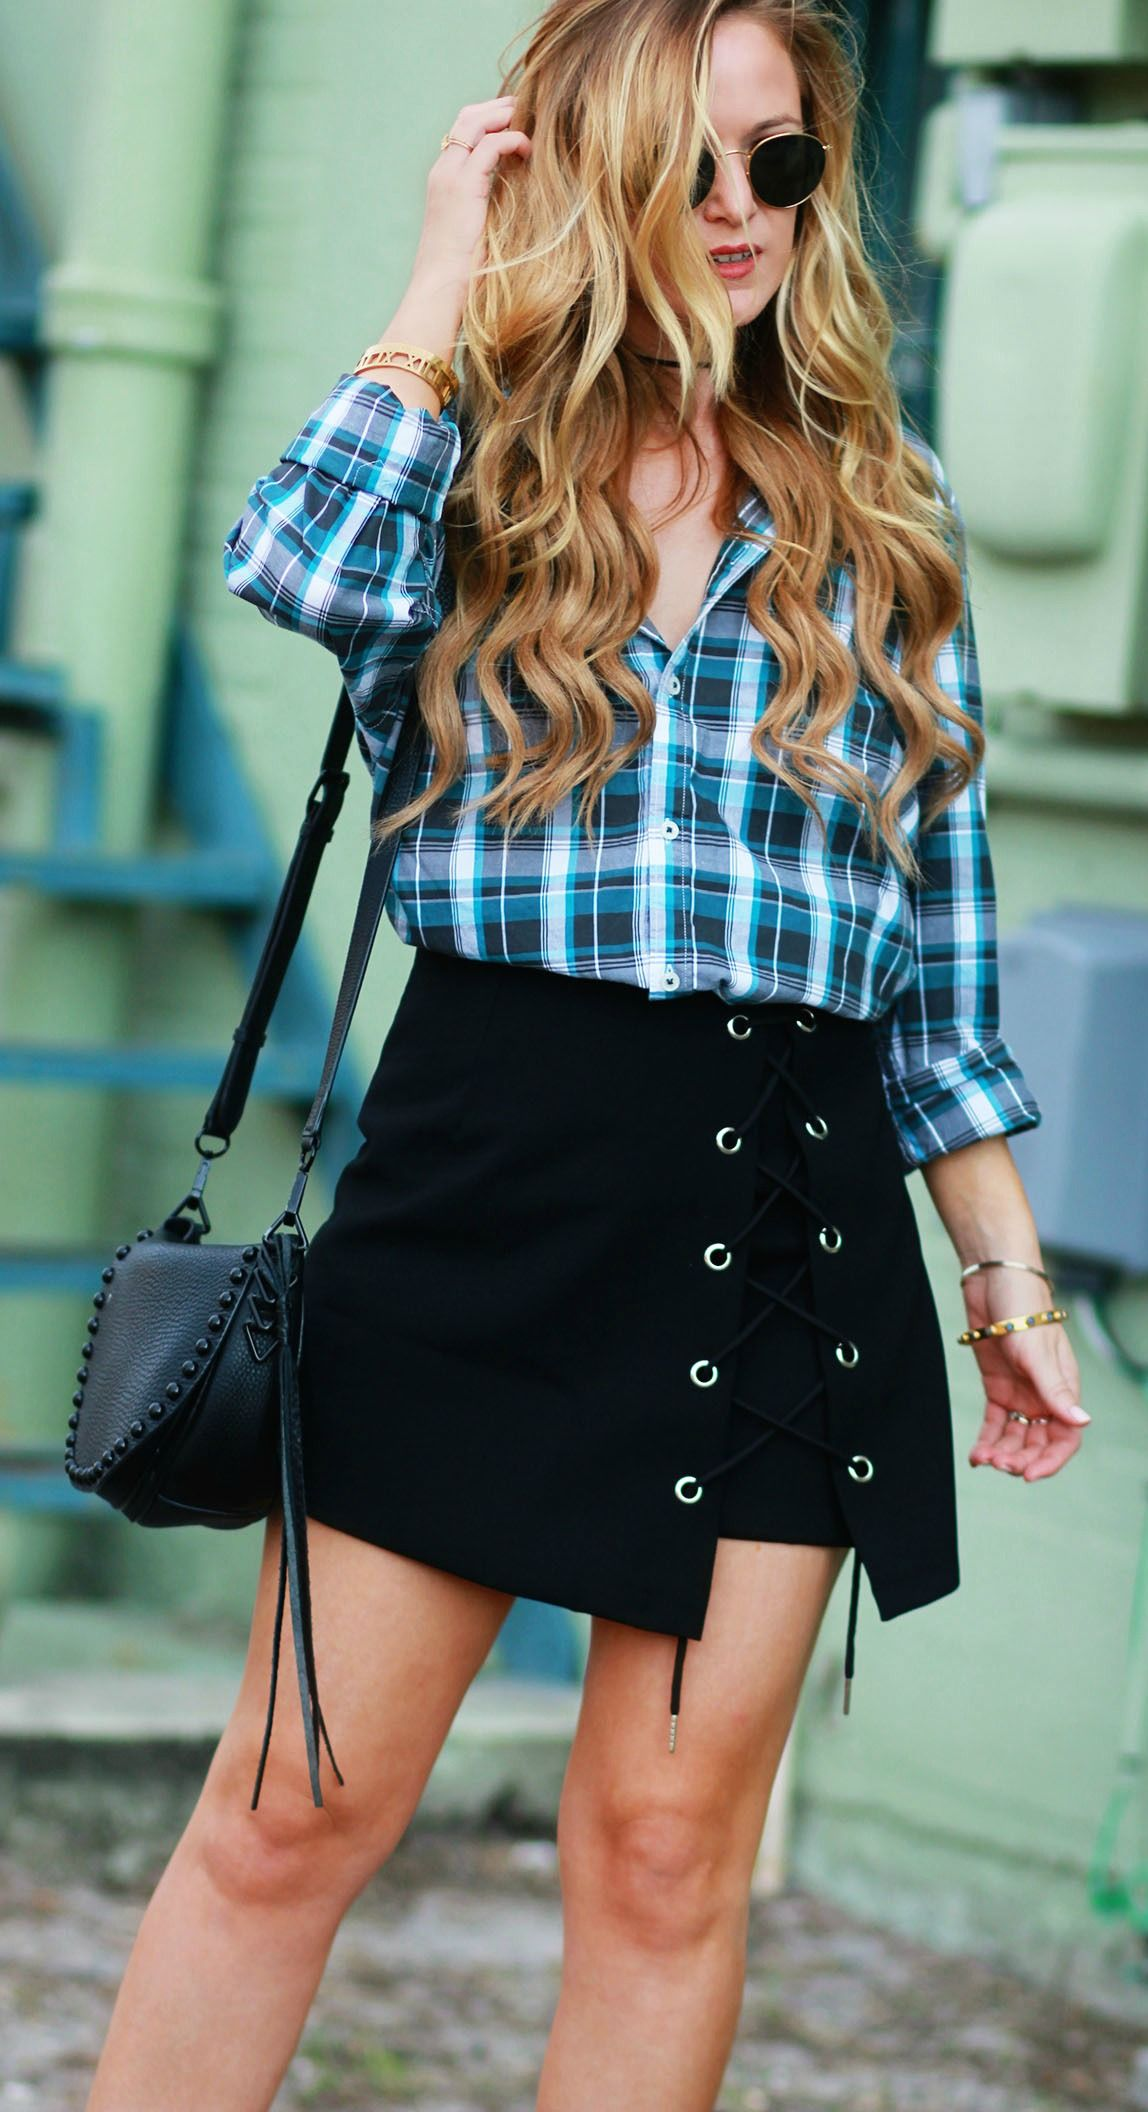 c11ee54be Fall transition outfit styled with a boyfriend plaid shirt, lace up mini  skirt, block heel sandals, Rebecca Minkoff saddle bag, and round Ray Ban  sunglasses